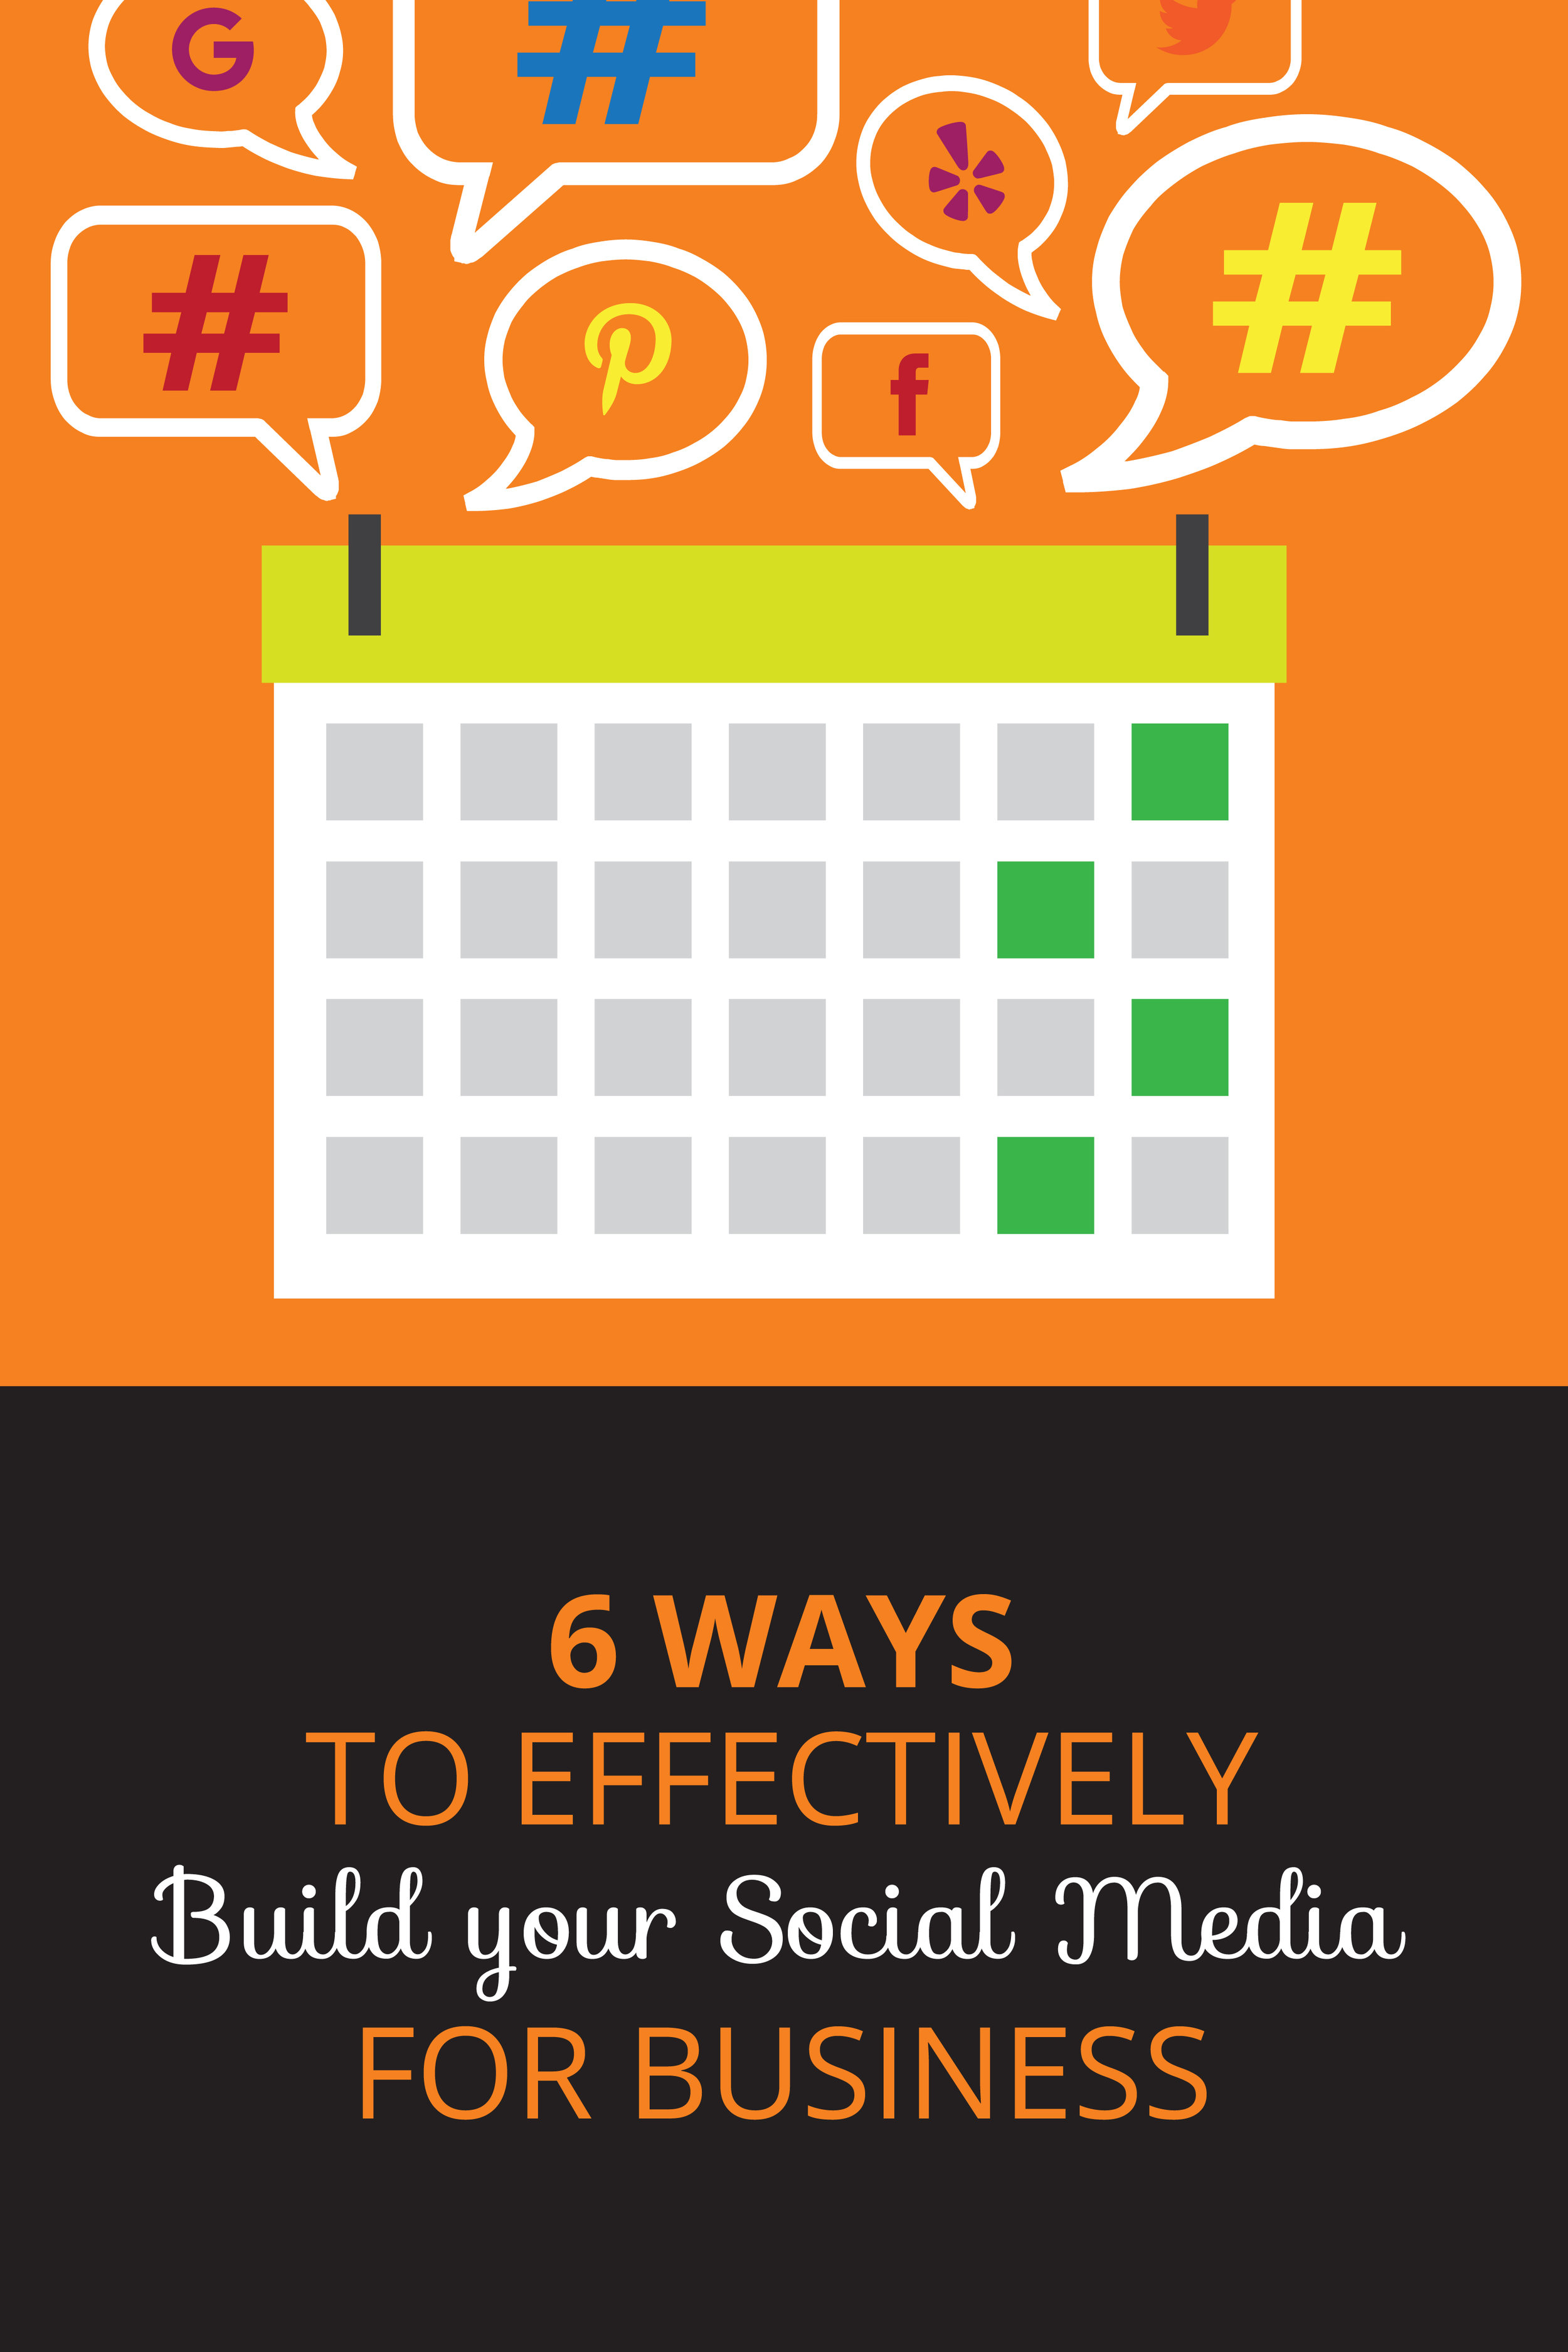 Ways to build your social media to bring in customers & leads. Small Business social media media tips.